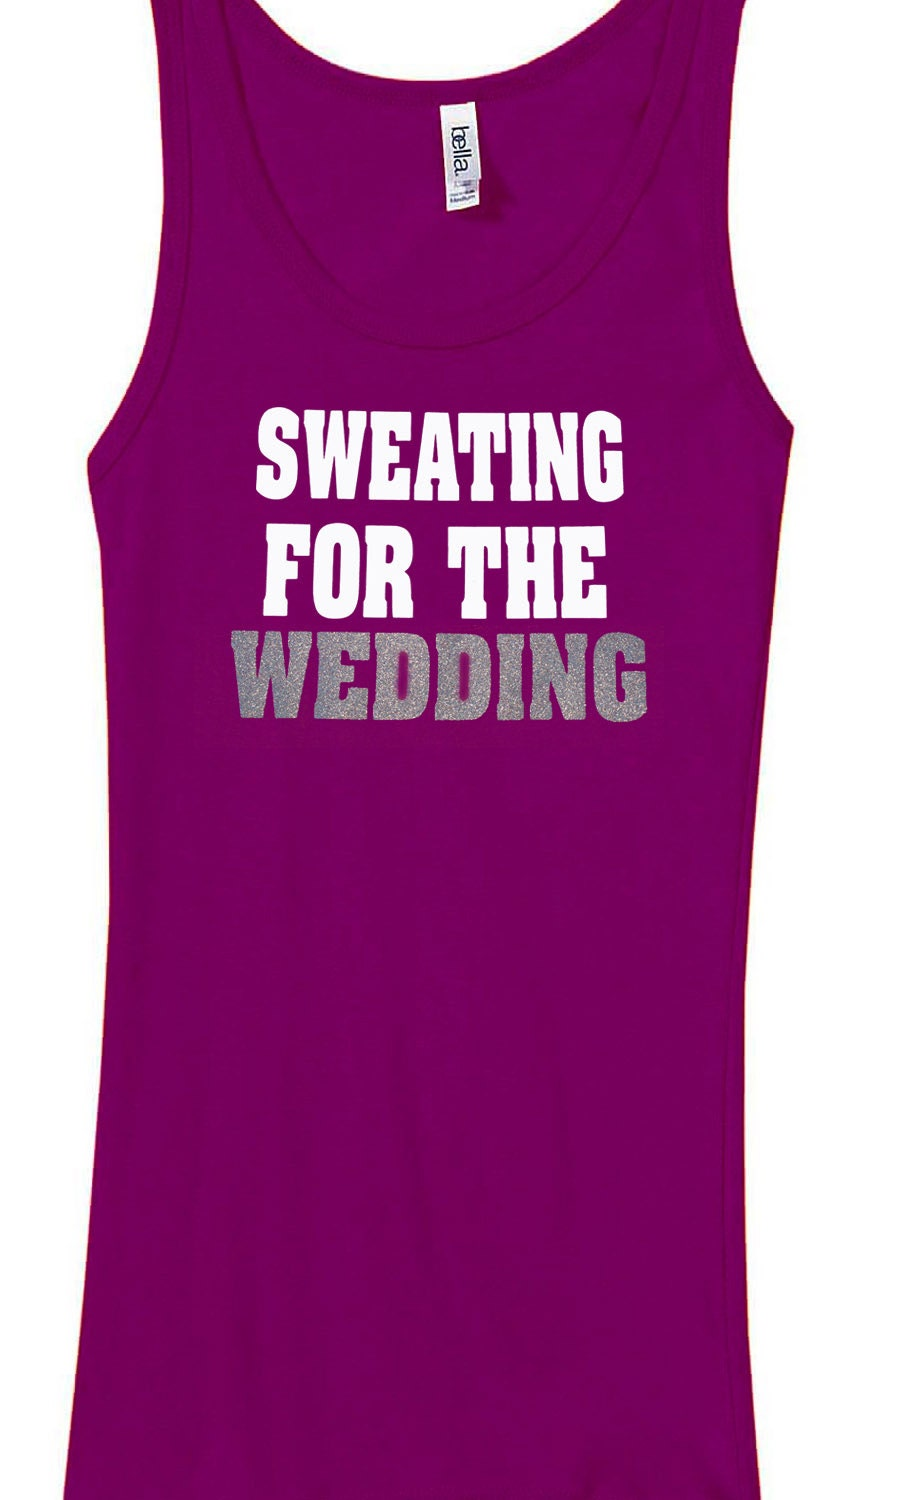 sweating for the wedding tank top workout shirt by